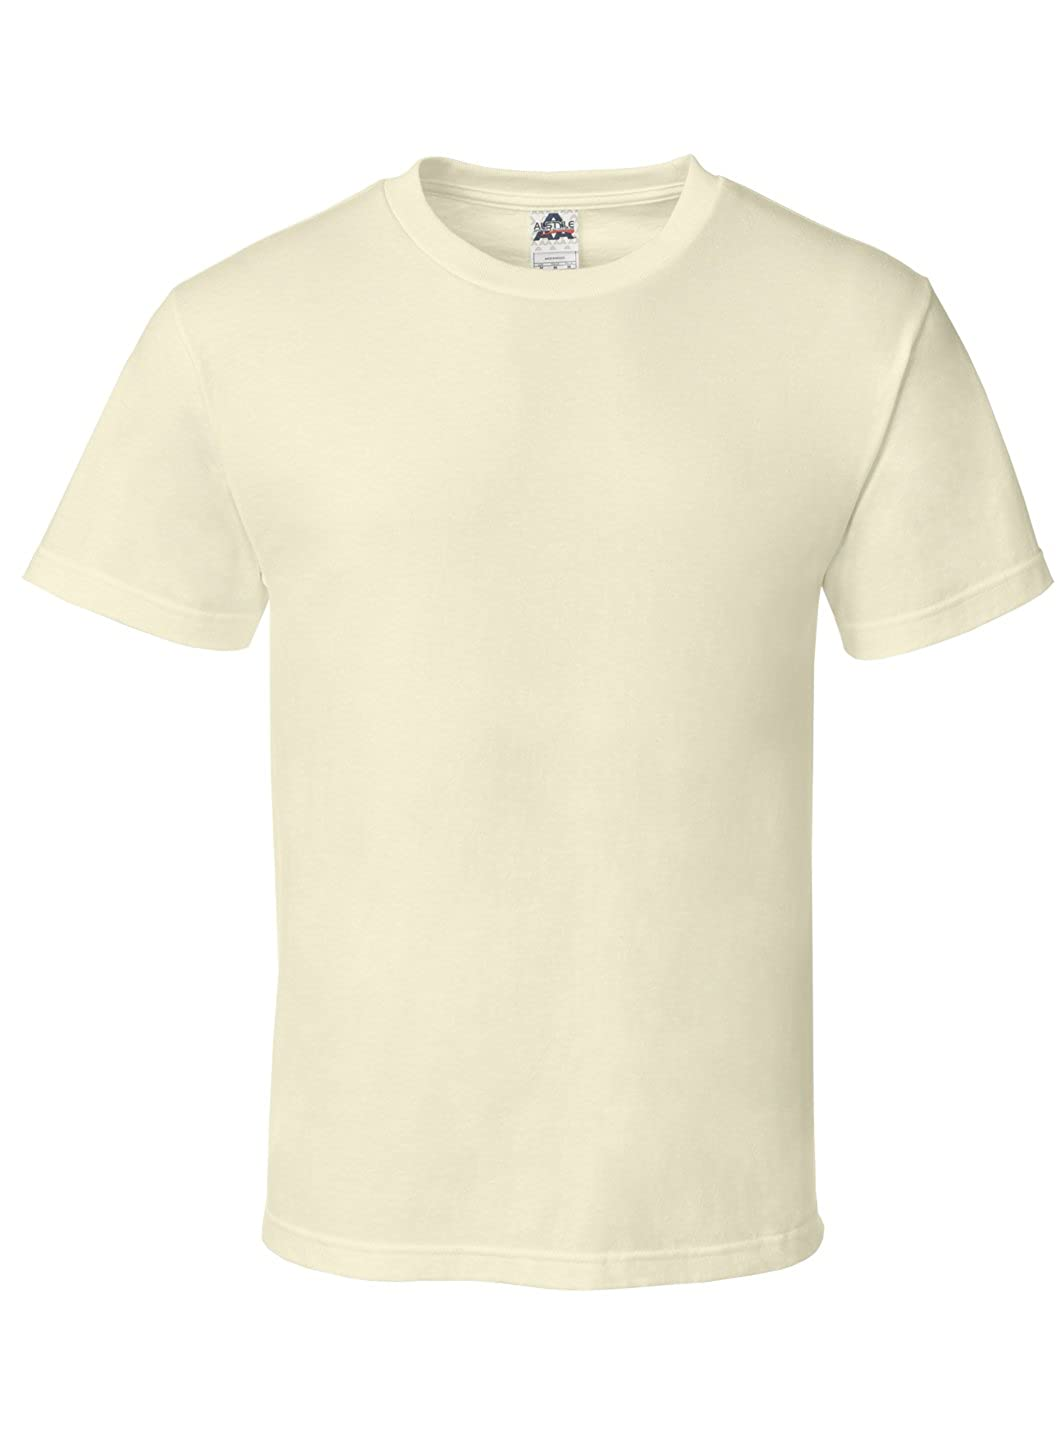 Alstyle Apparel AAA Mens Classic Cotton Short Sleeve T-Shirt Athletic Heather Gray 5XL